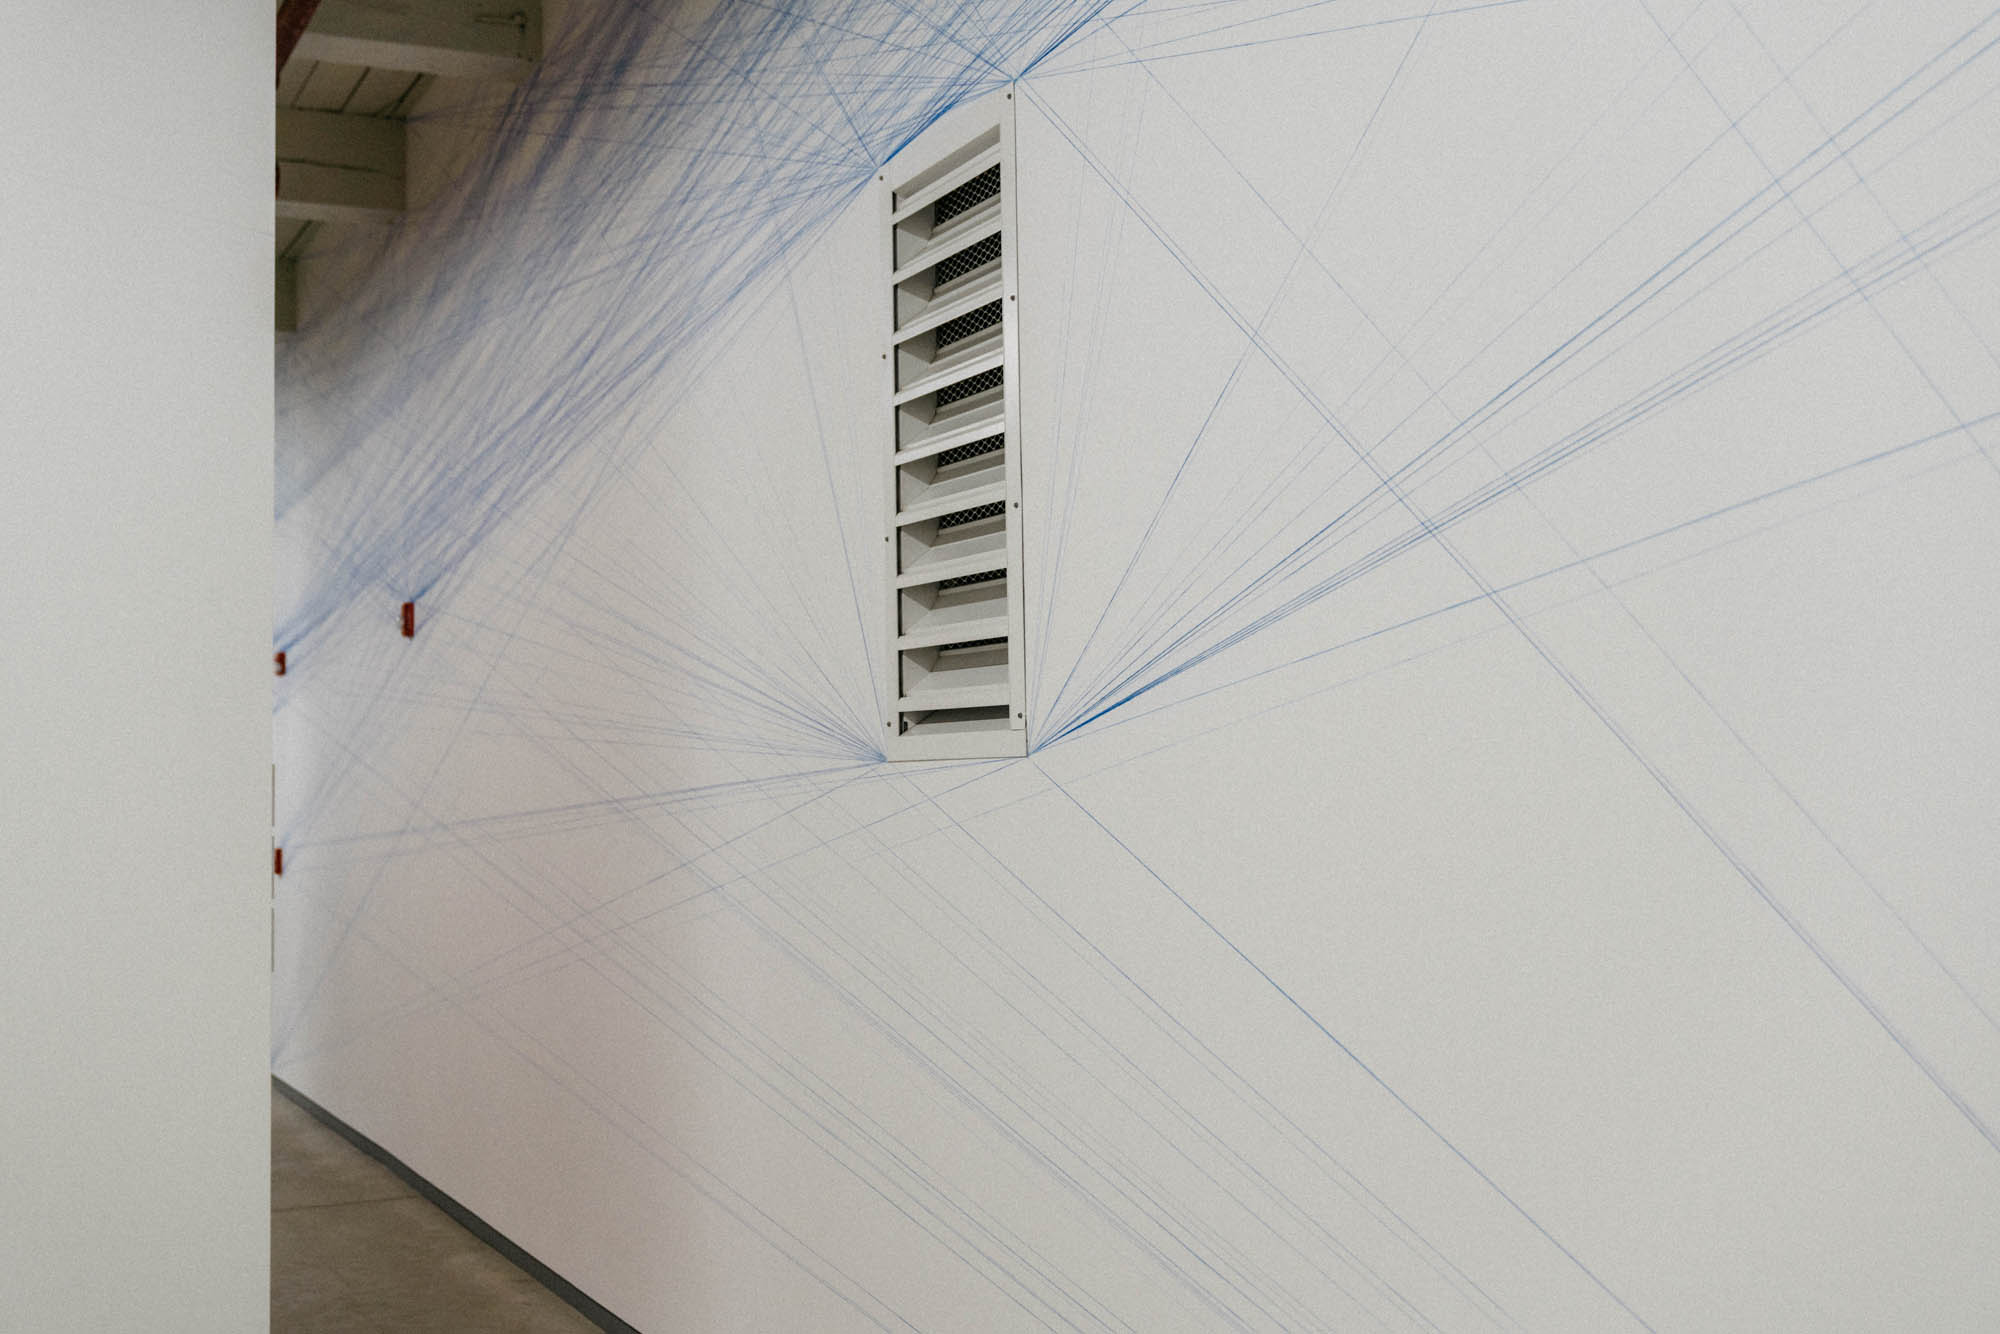 Sol Lewitt, A Drawing Retrospective